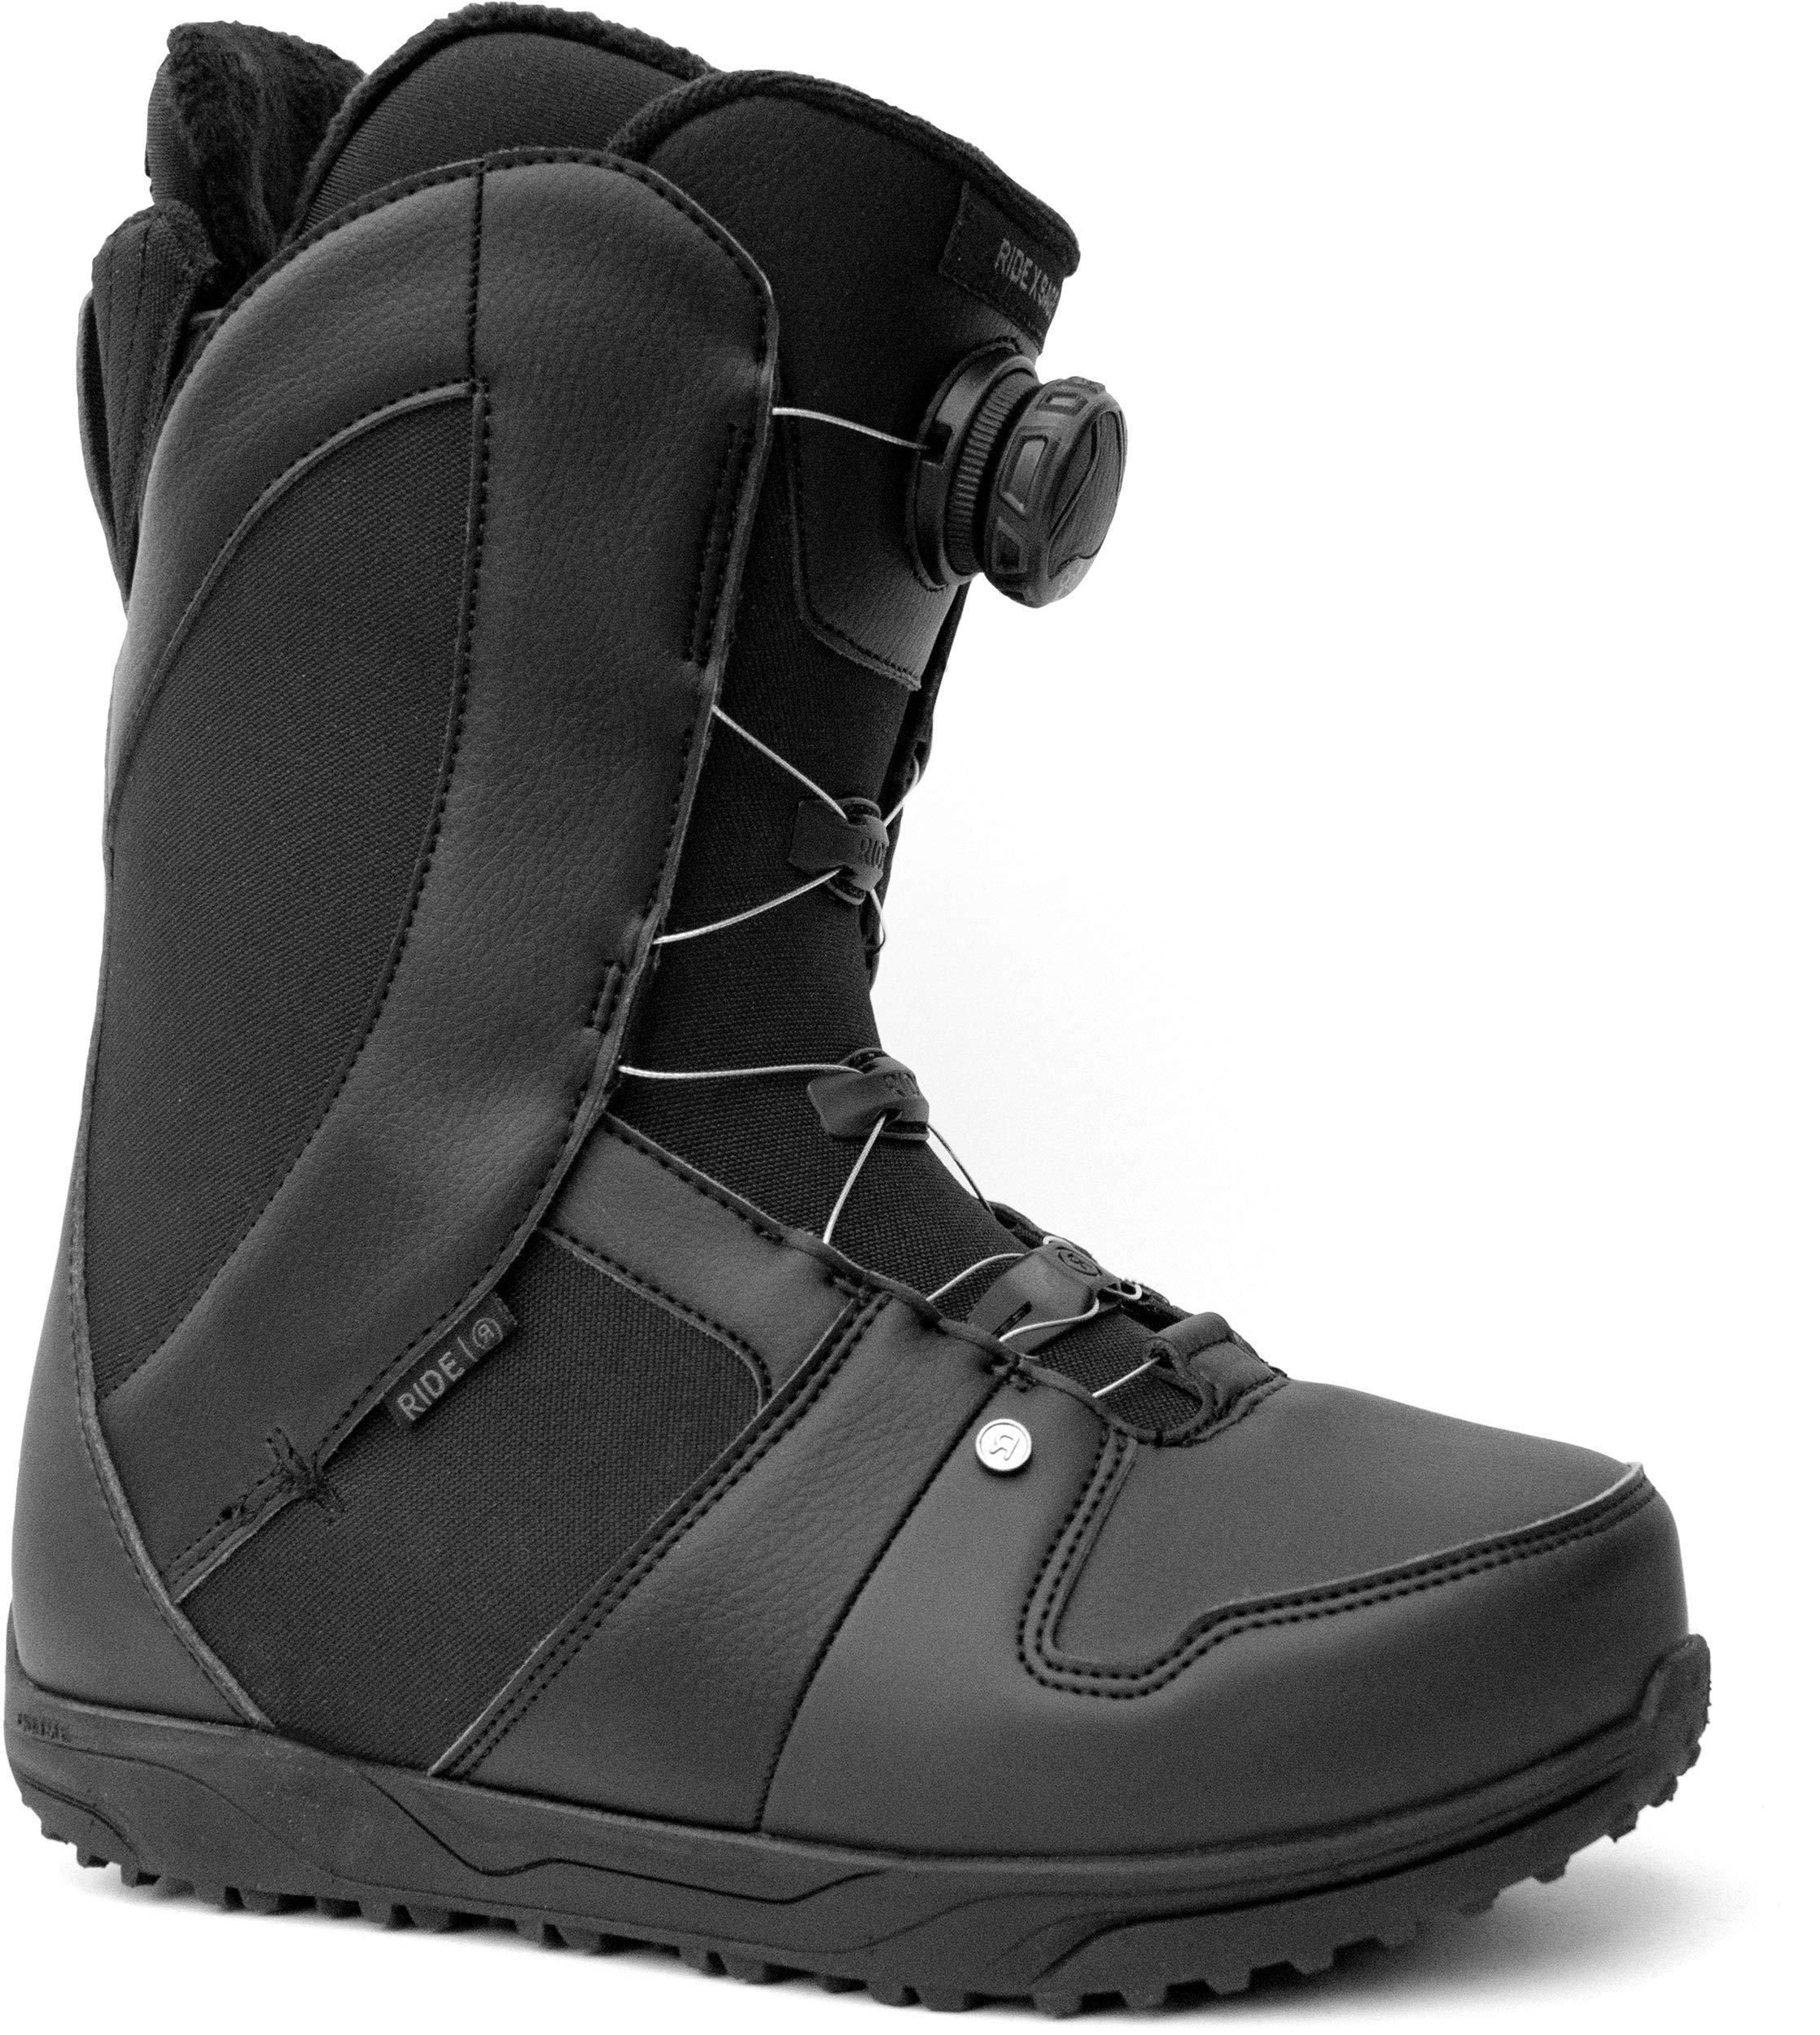 Ride Women's Sage Snowboard, Black, Boot Size 7.5 by Ride